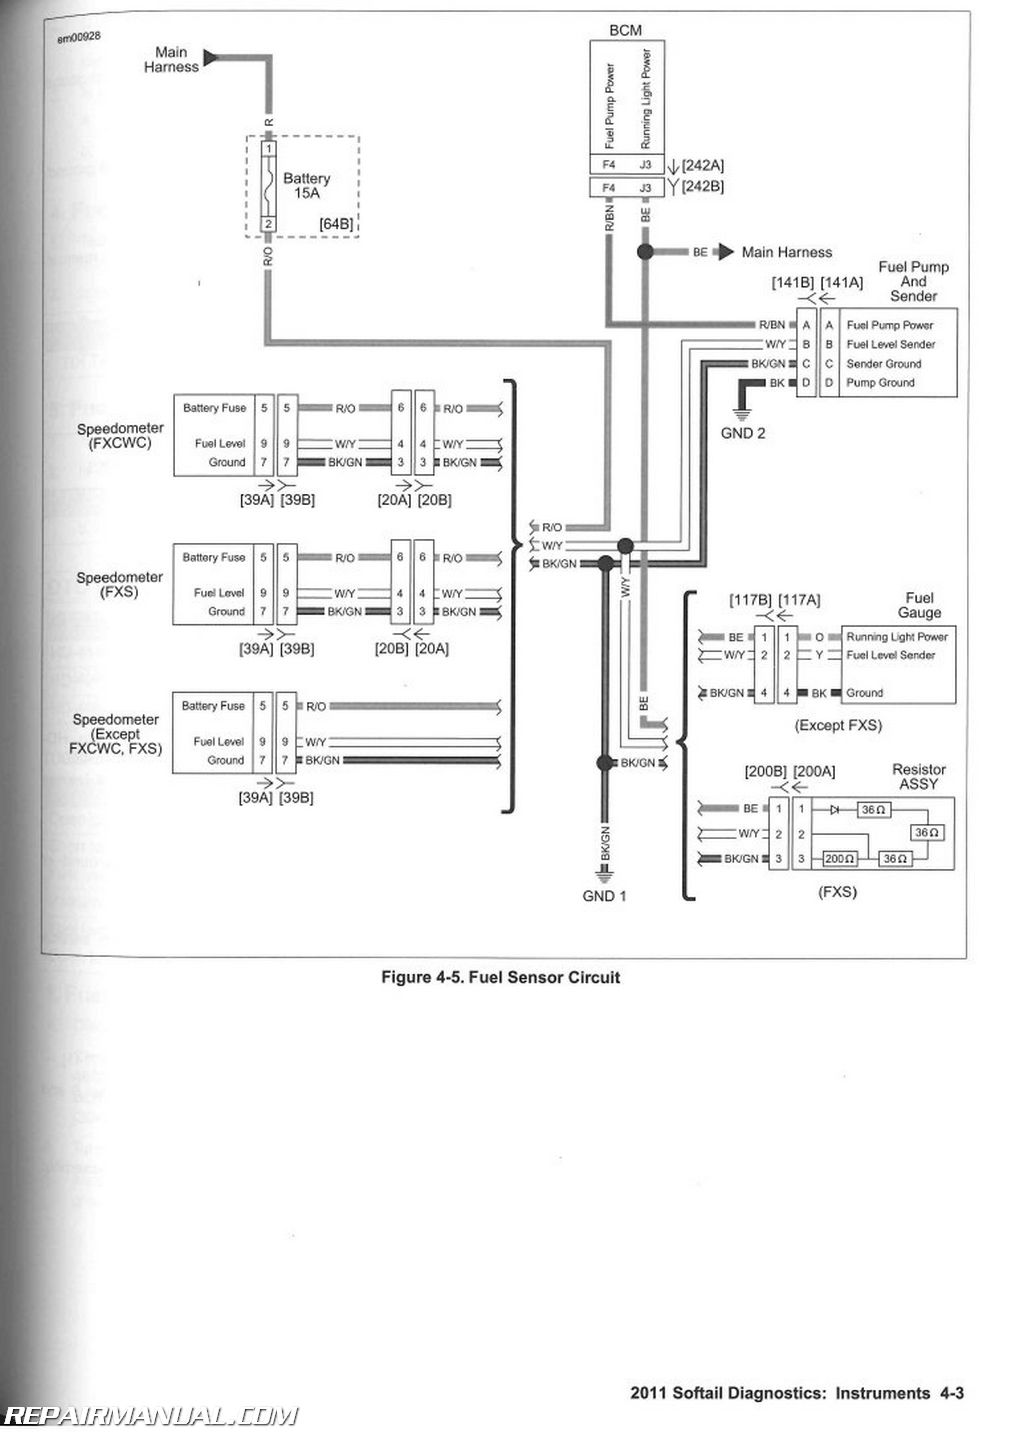 2011 sportster wiring diagram trusted wiring diagrams \u2022 1994 sportster wiring diagram 2011 sportster wiring diagram wiring diagram rh aiandco co 2011 harley sportster wiring diagram 1990 harley